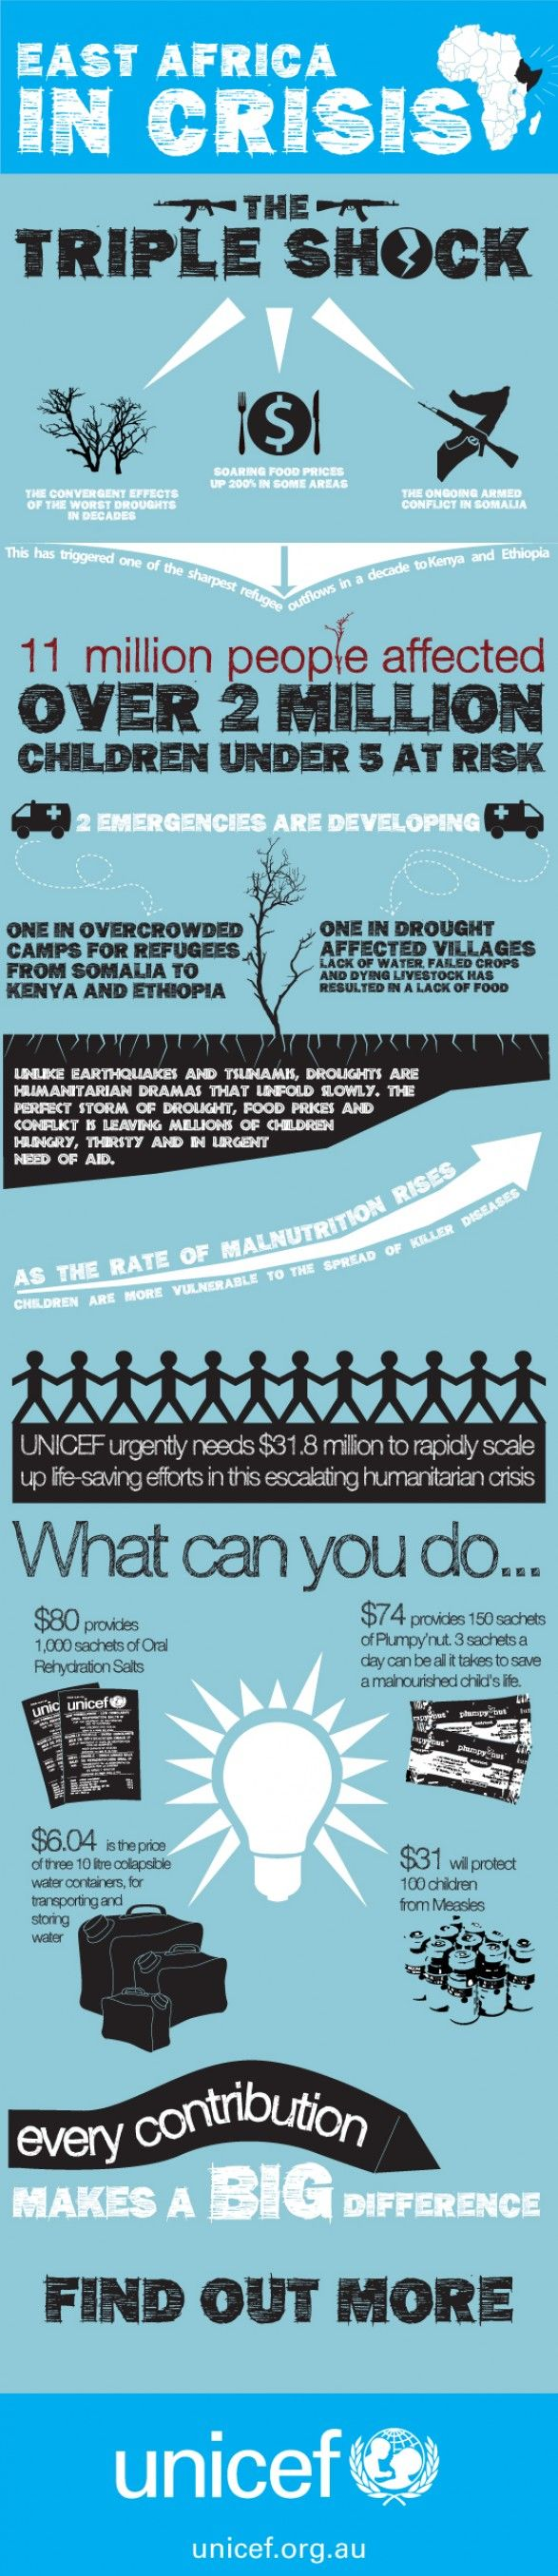 East Africa crisis (2011) by UNICEF Australia